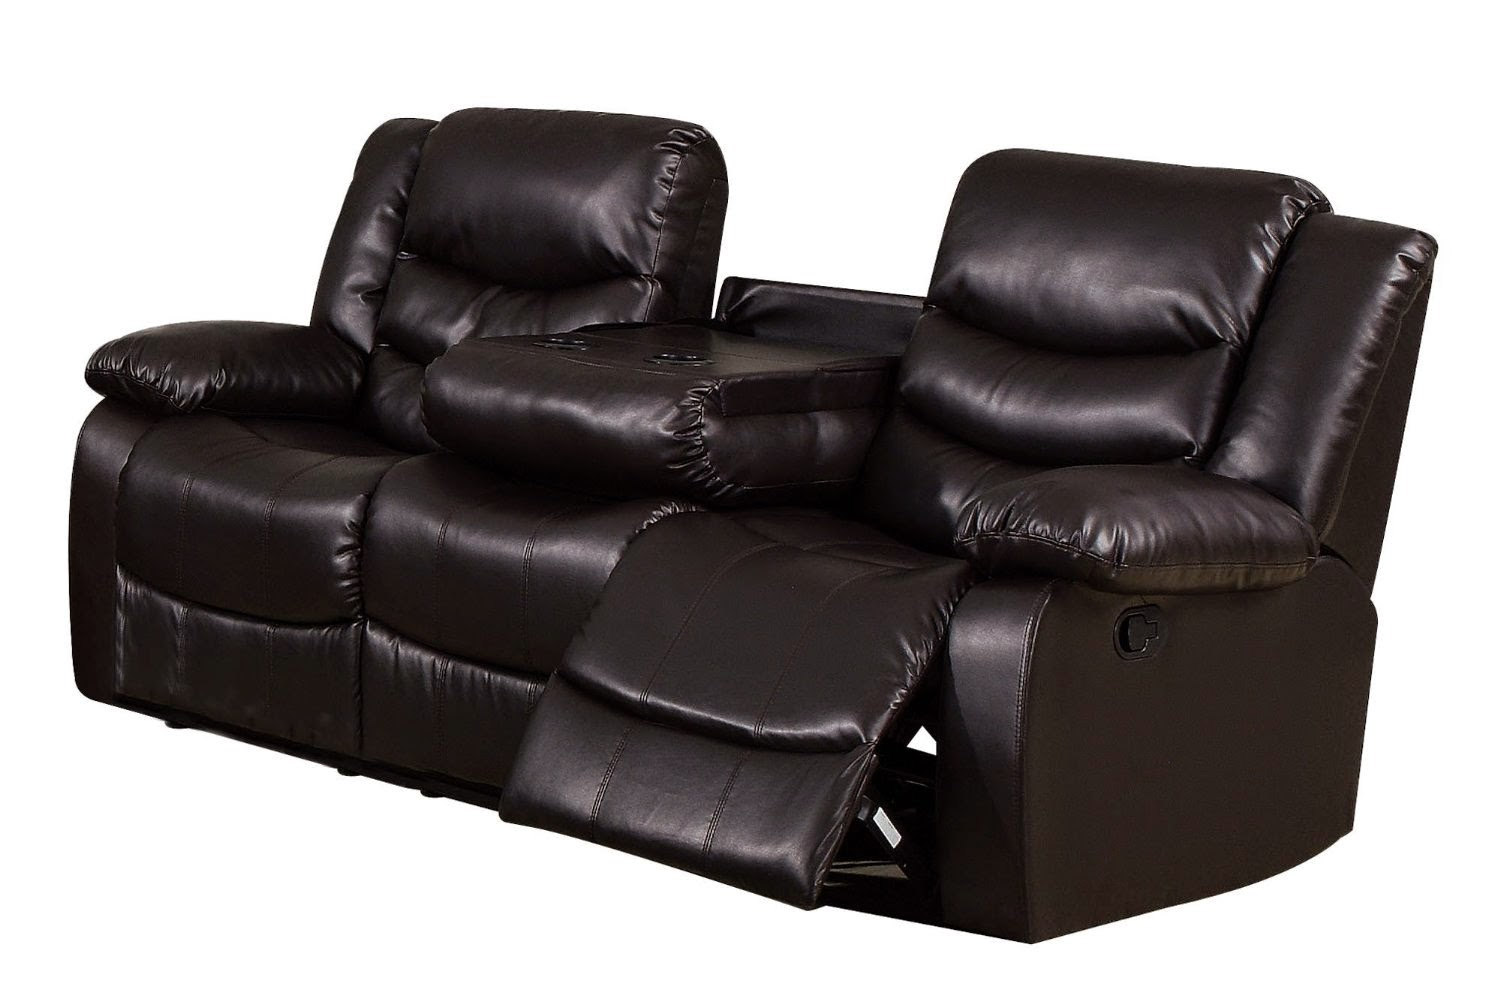 4 Person Reclining Sofa Bobs Furniture Chaise Sofas For Sale Dual With Drop